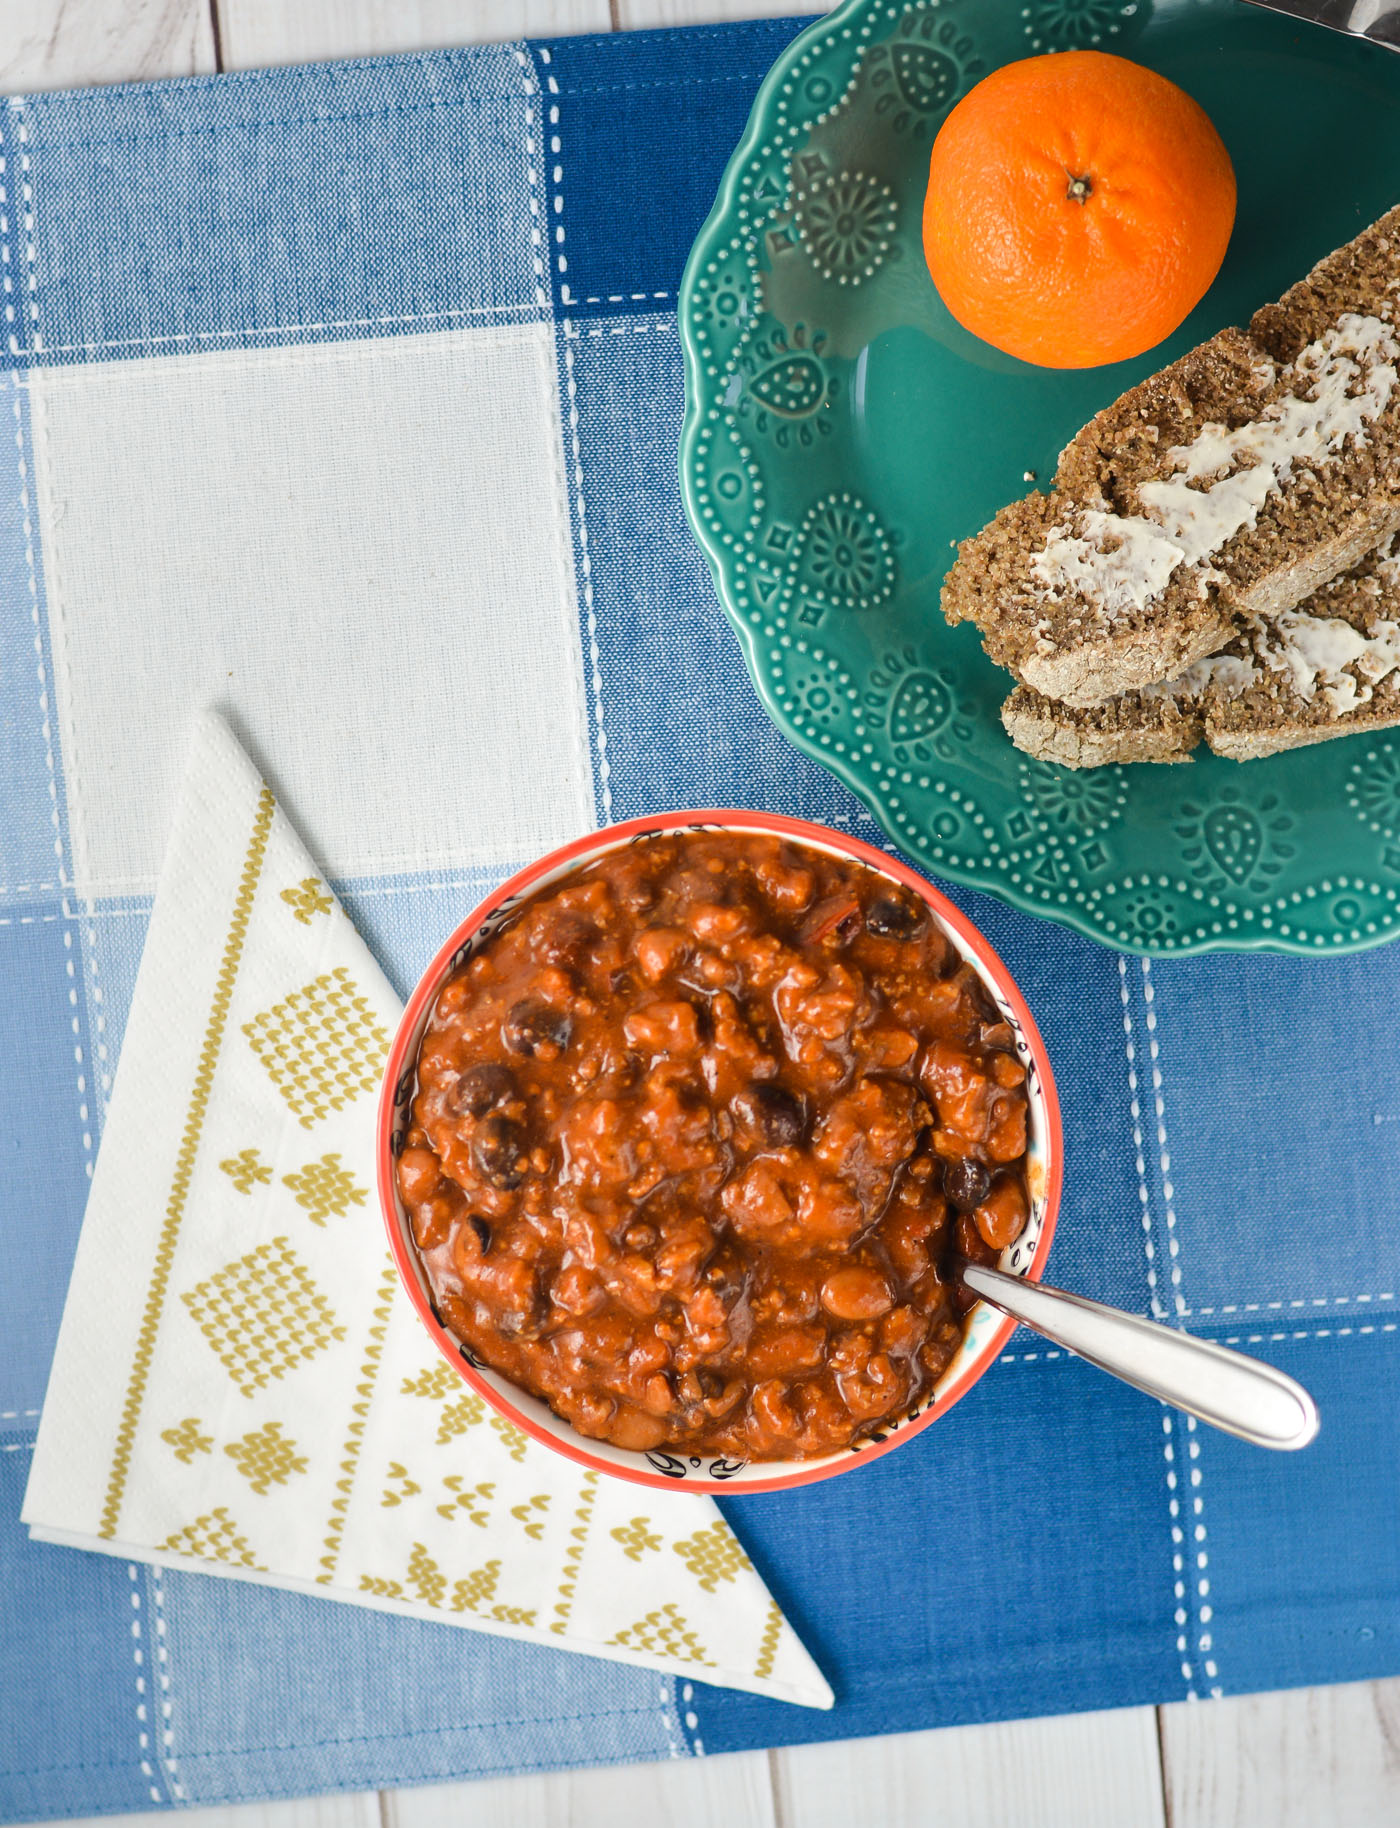 This Sweet & Smoky Chipotle Chili is a step up from your standard chili recipe! THM E, low fat, NSI (sub a locally-sourced sweetener), allergy friendly